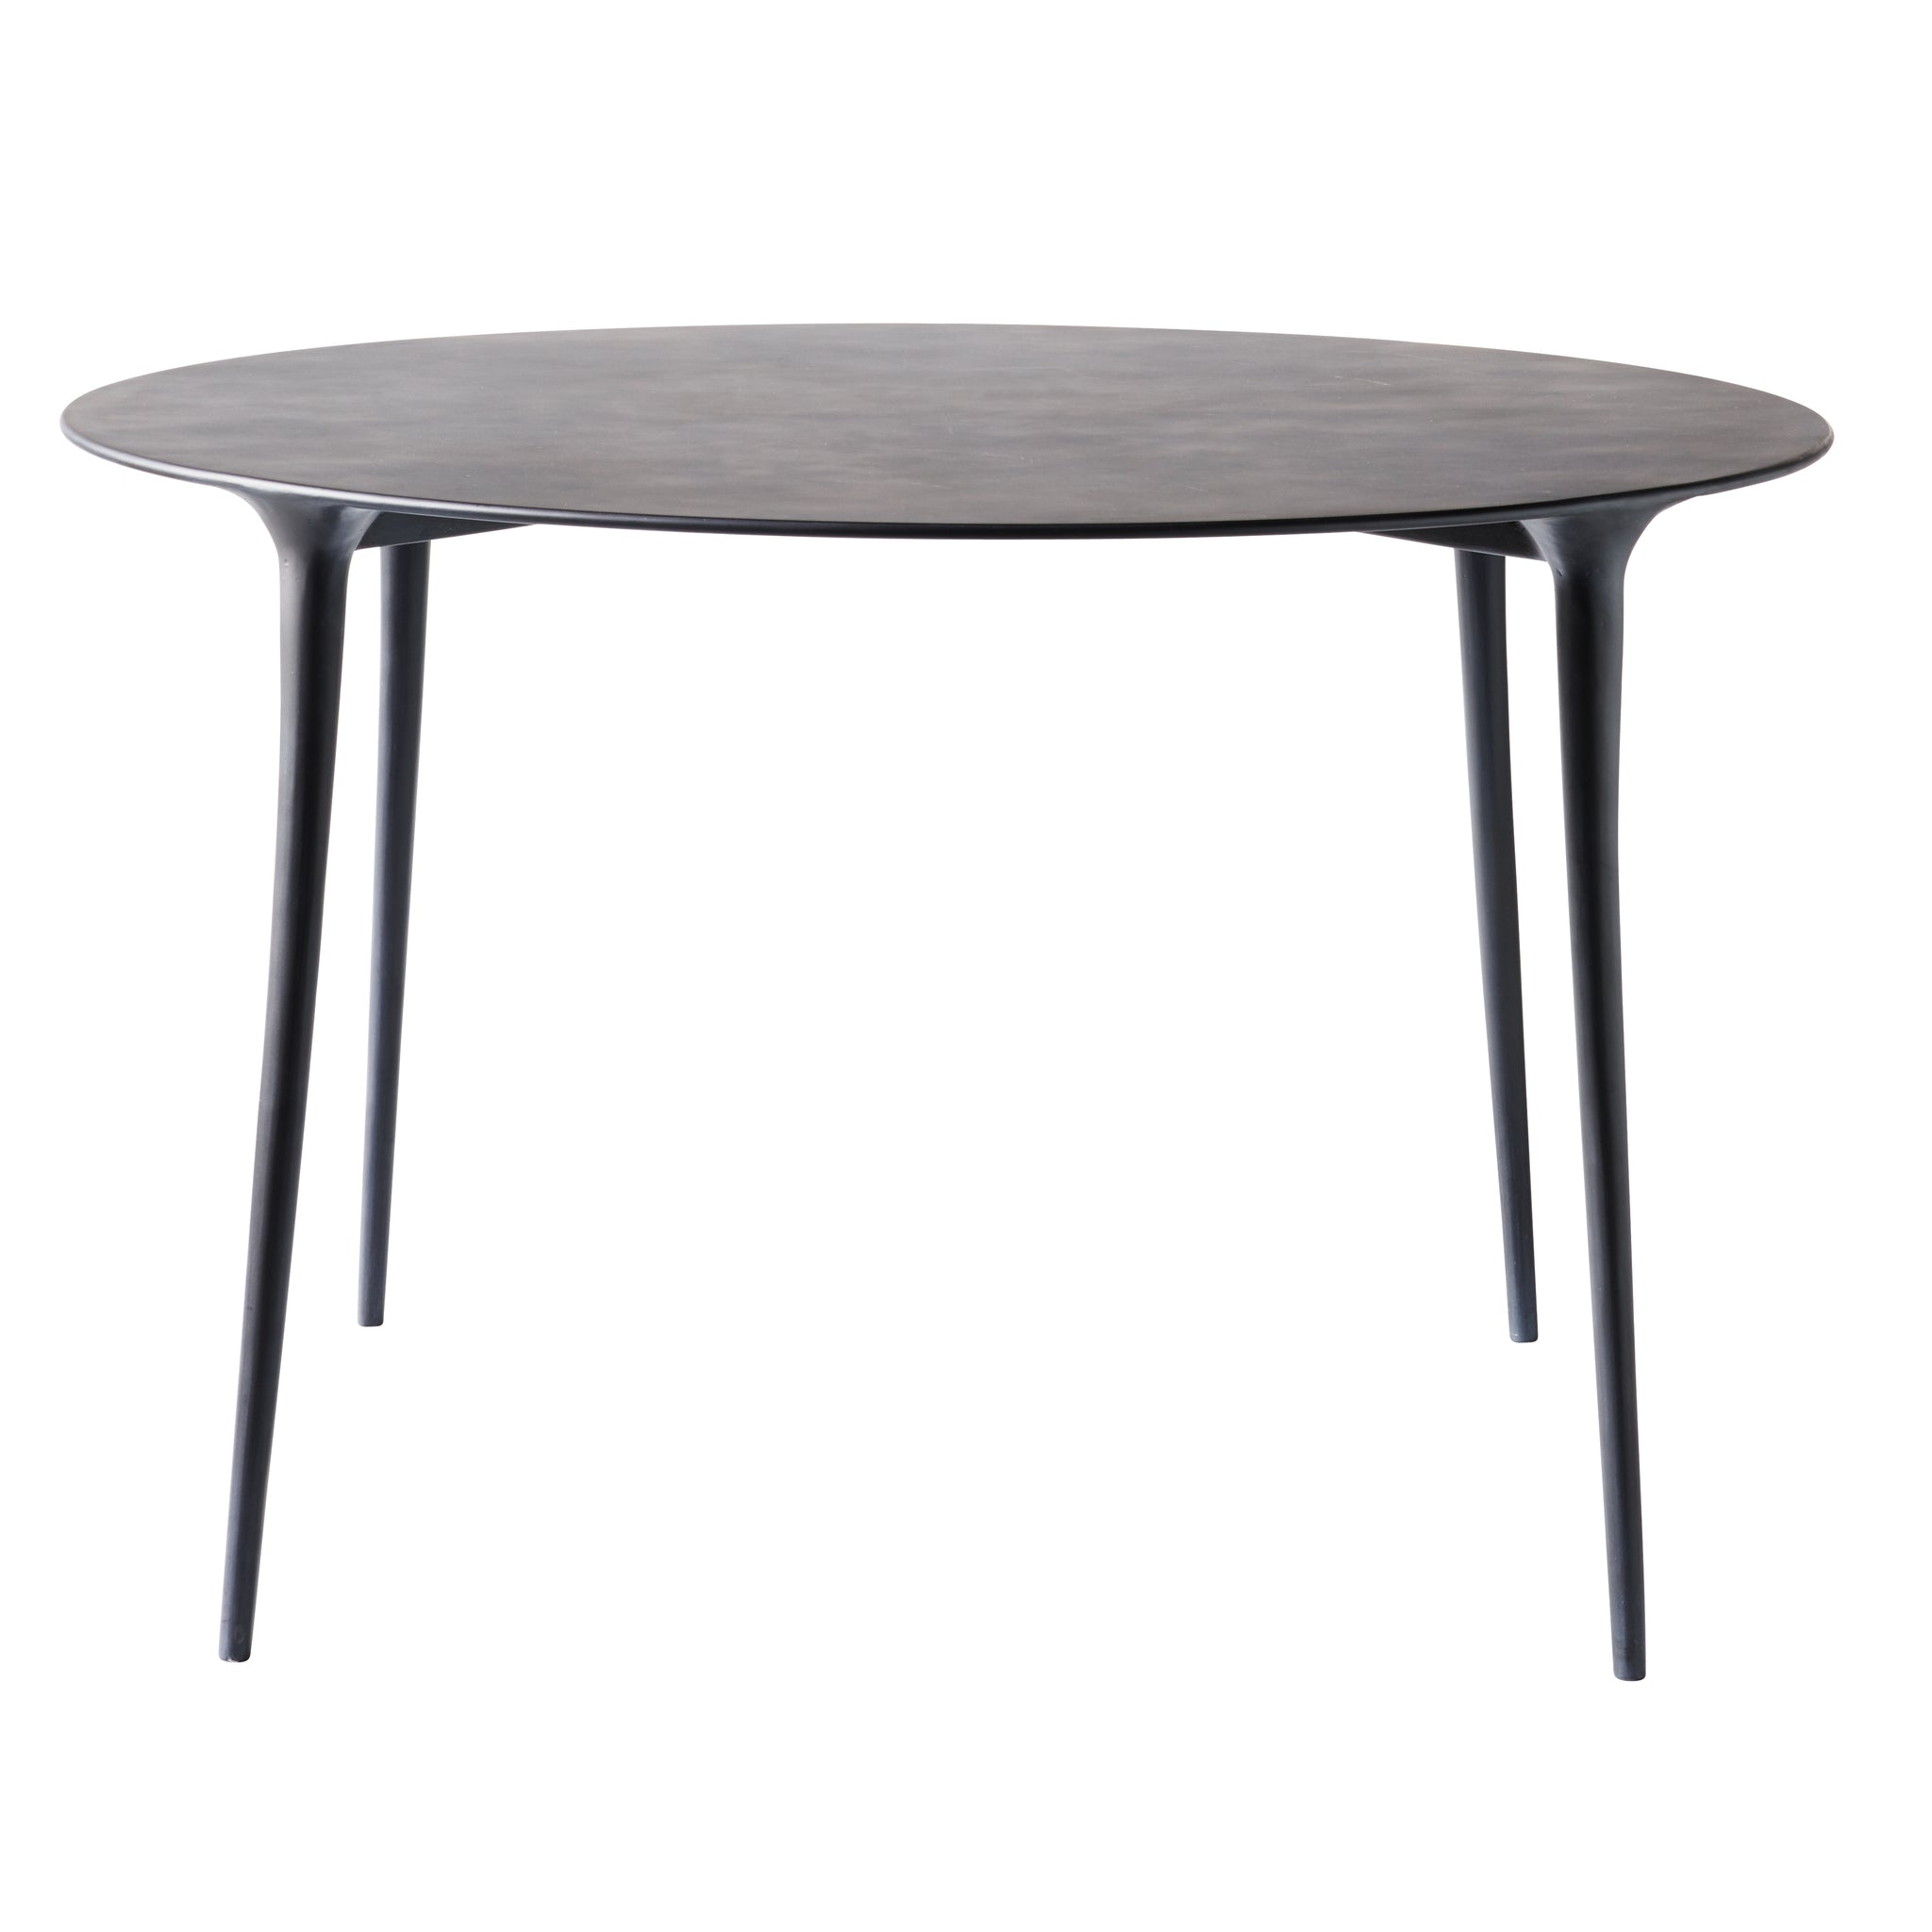 Dark Gray Feel Round Aluminum Table 48""